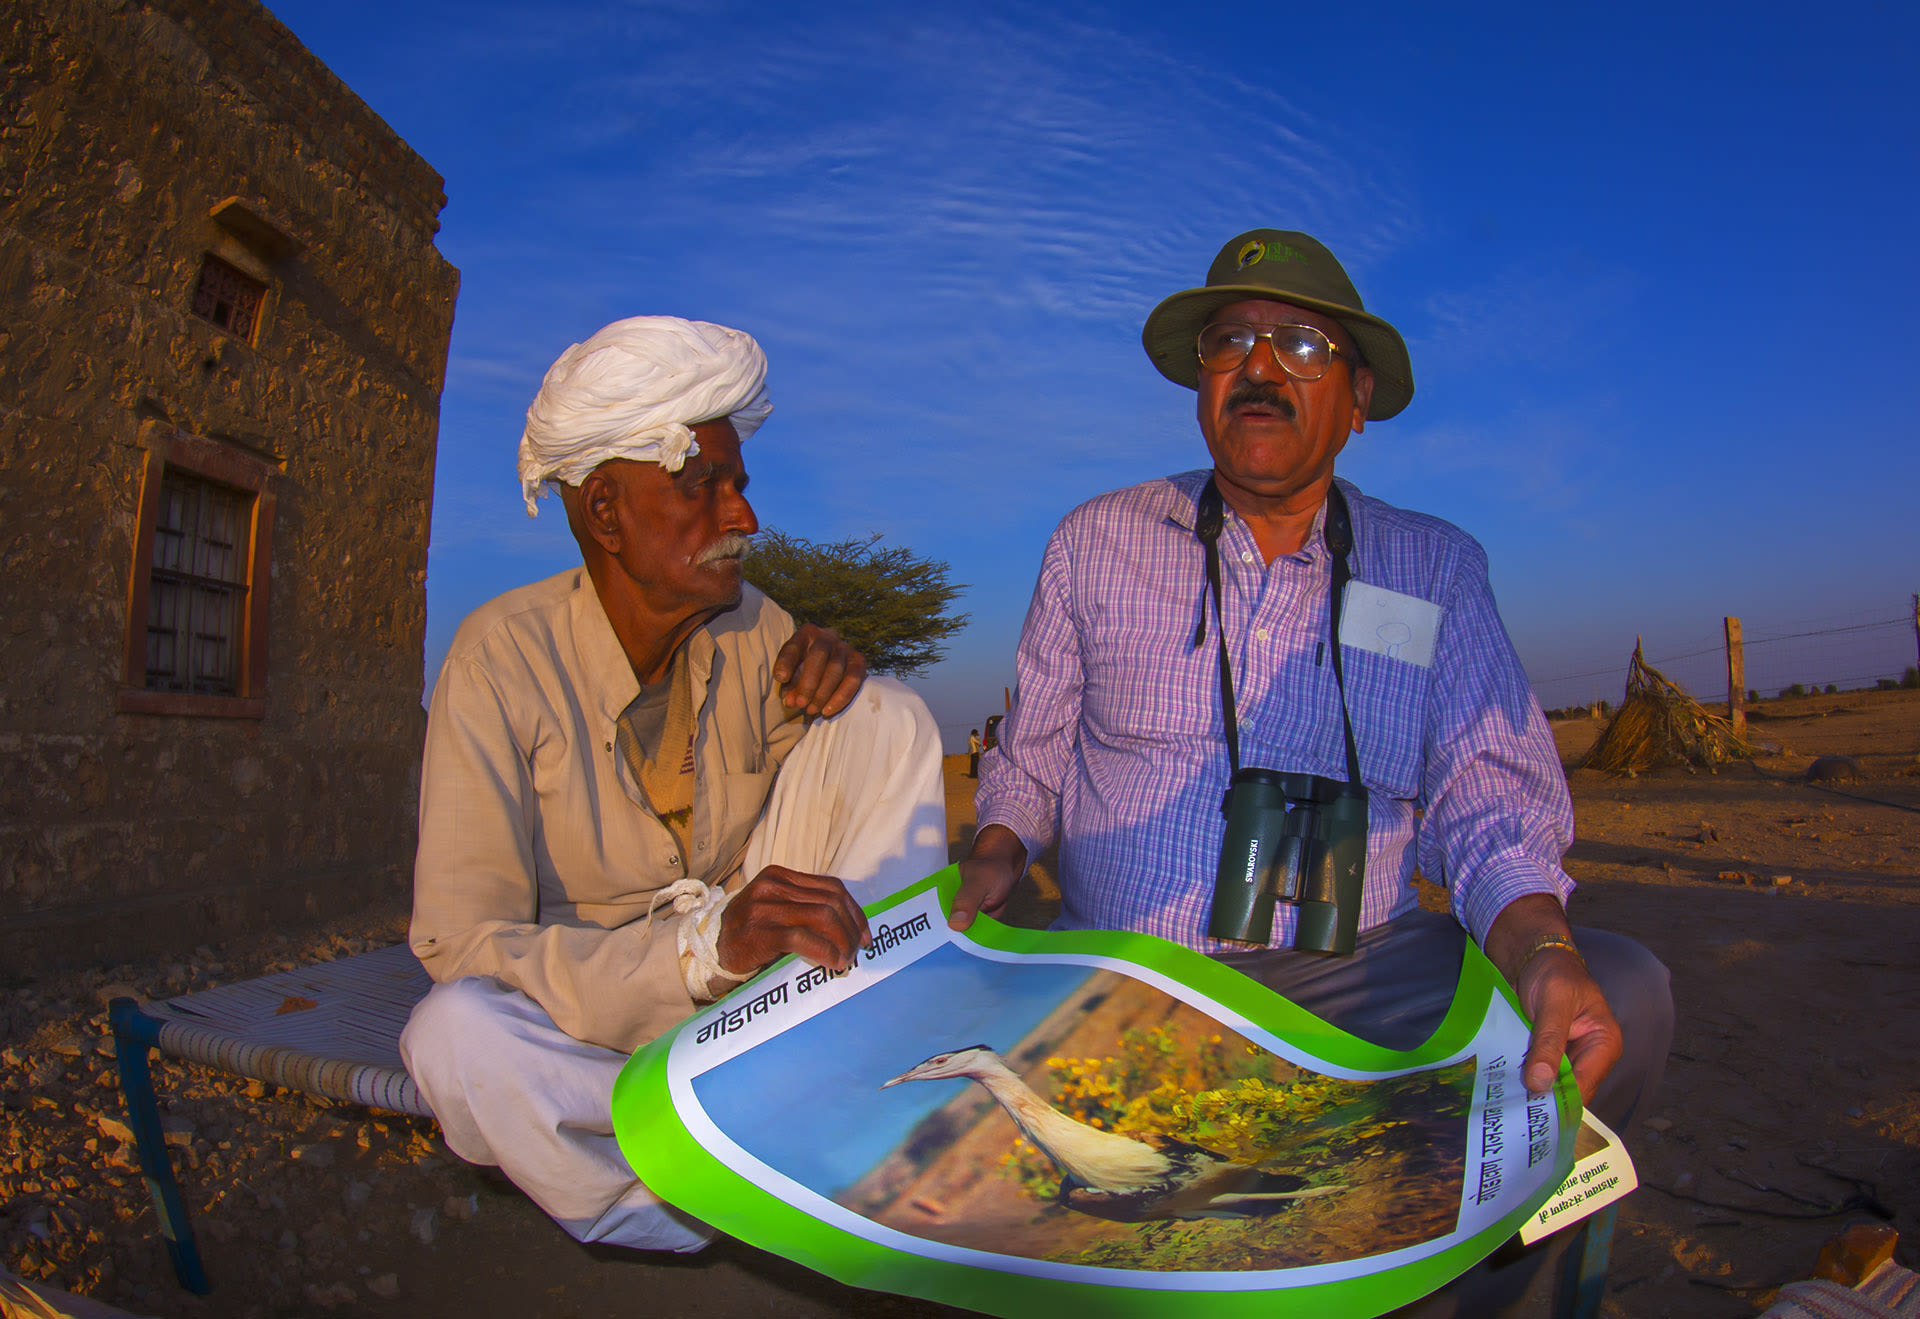 Asad Rahmani's work often involves engaging with local communities. Here he speaks about the need for conservation of the great Indian bustard to a local in Rajasthan. Photo: Dhritiman Mukherjee